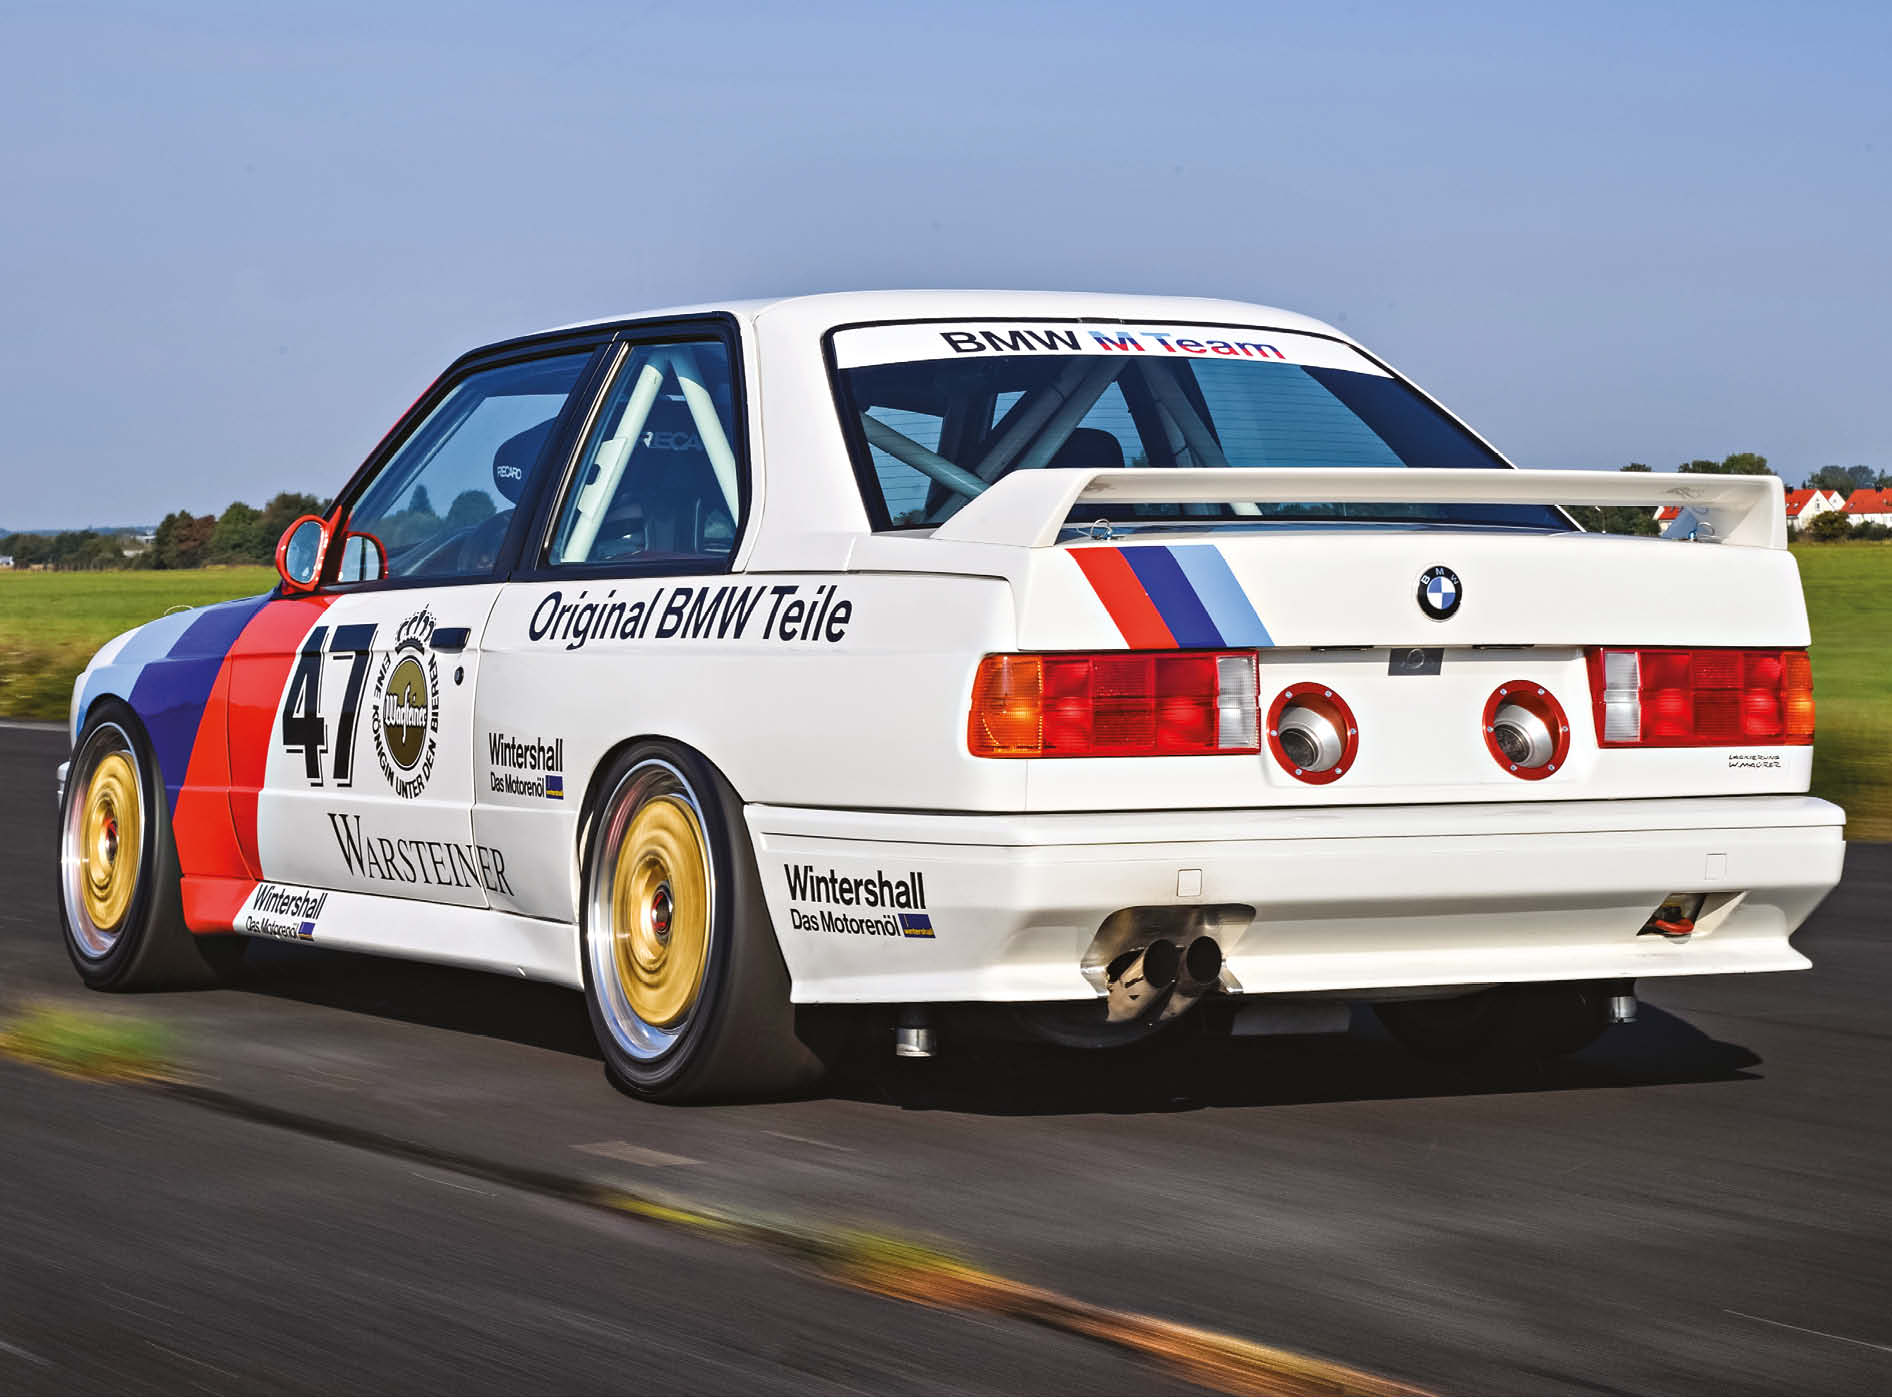 First released in the mid-1980s, the E30 M3 went on to win the 1987 World Touring Car crown